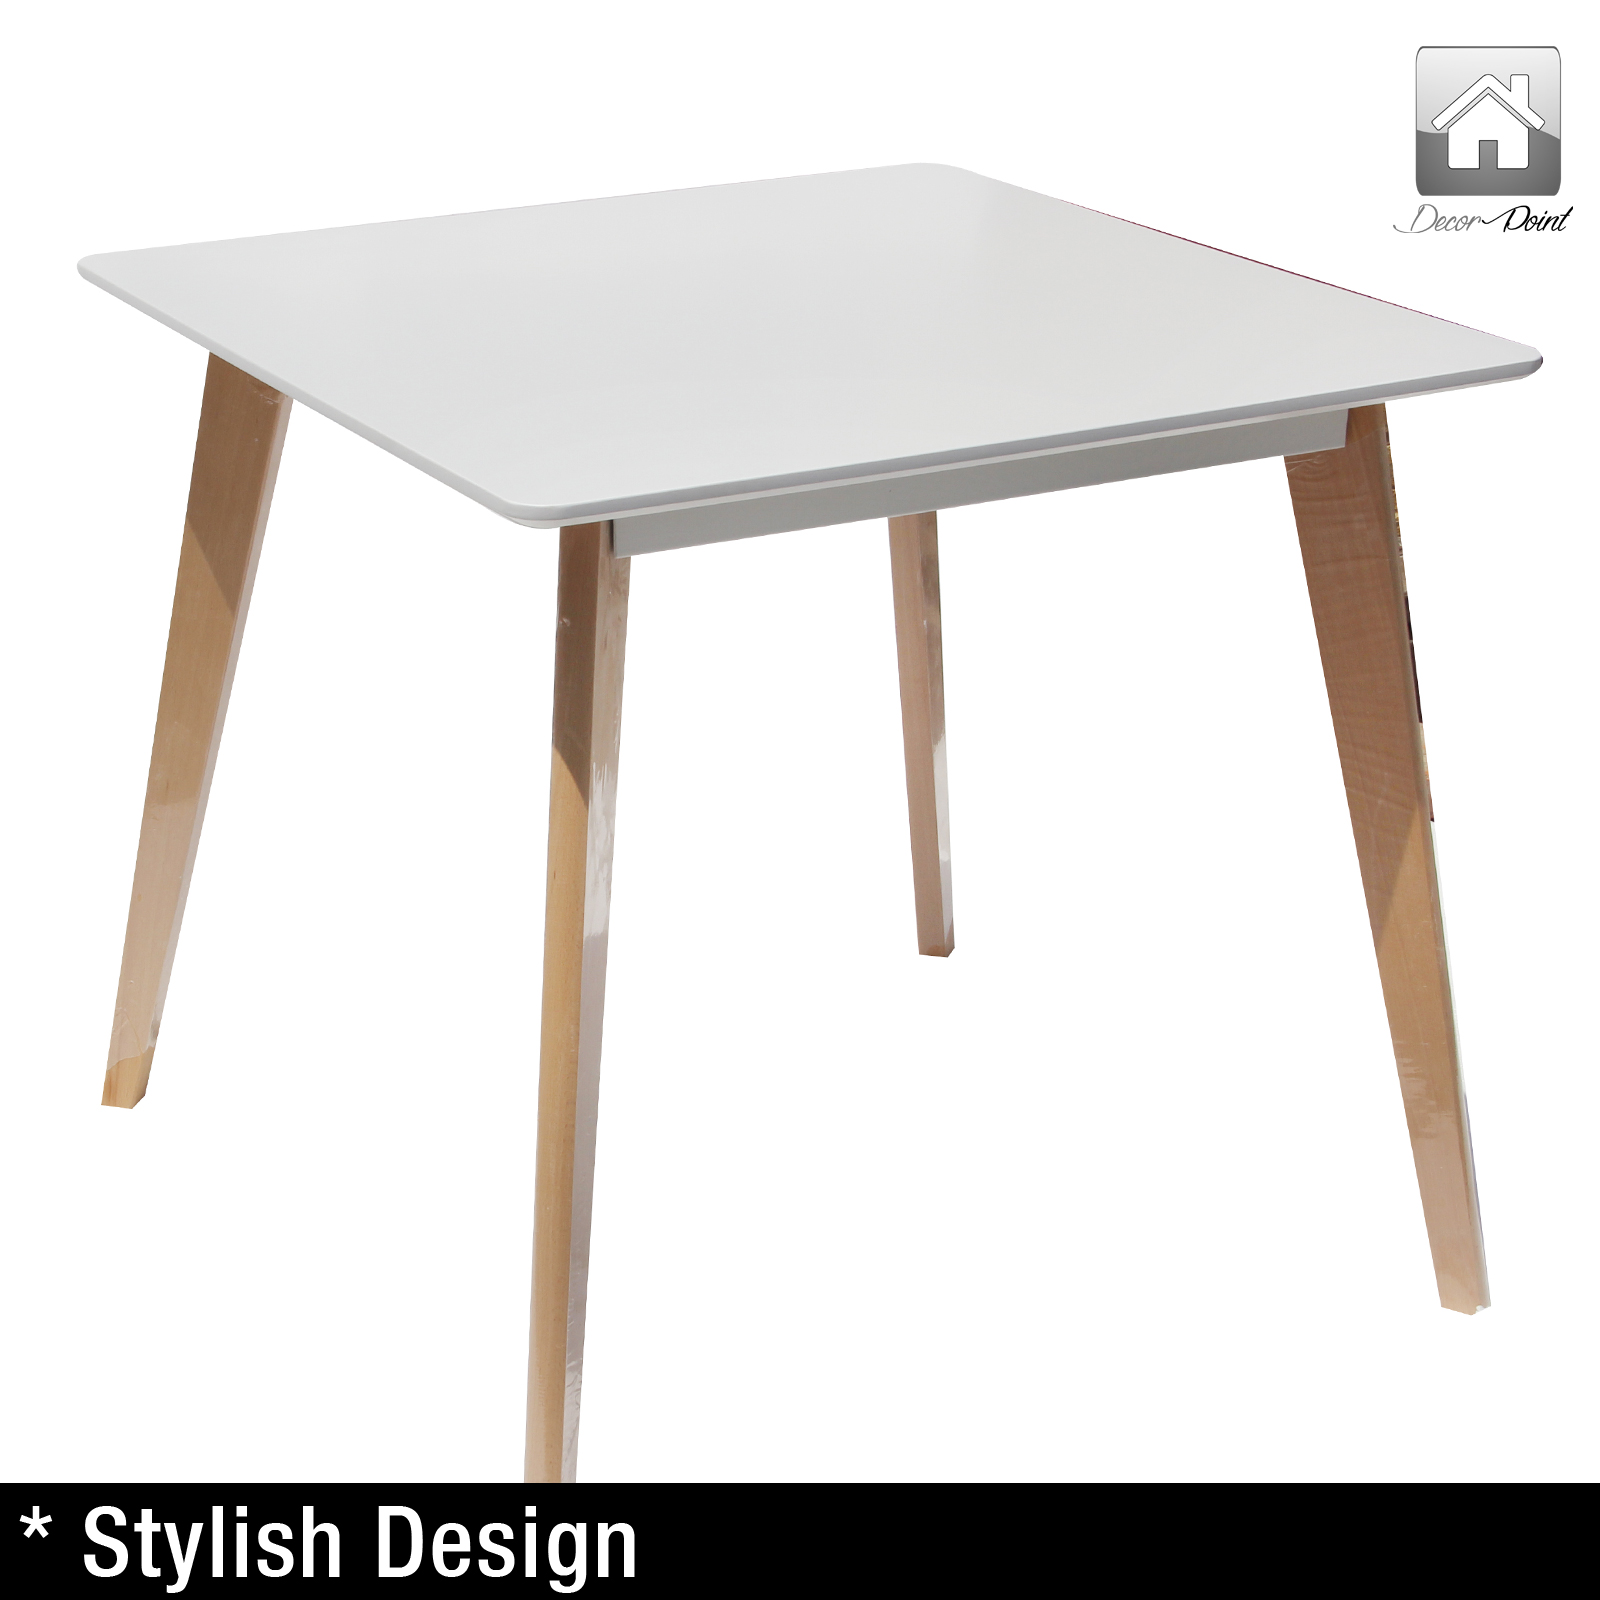 Replica Eames DSW City Dining Table White Designer Kitchen  : City Small Table 03 from www.ebay.com.au size 1600 x 1600 jpeg 358kB